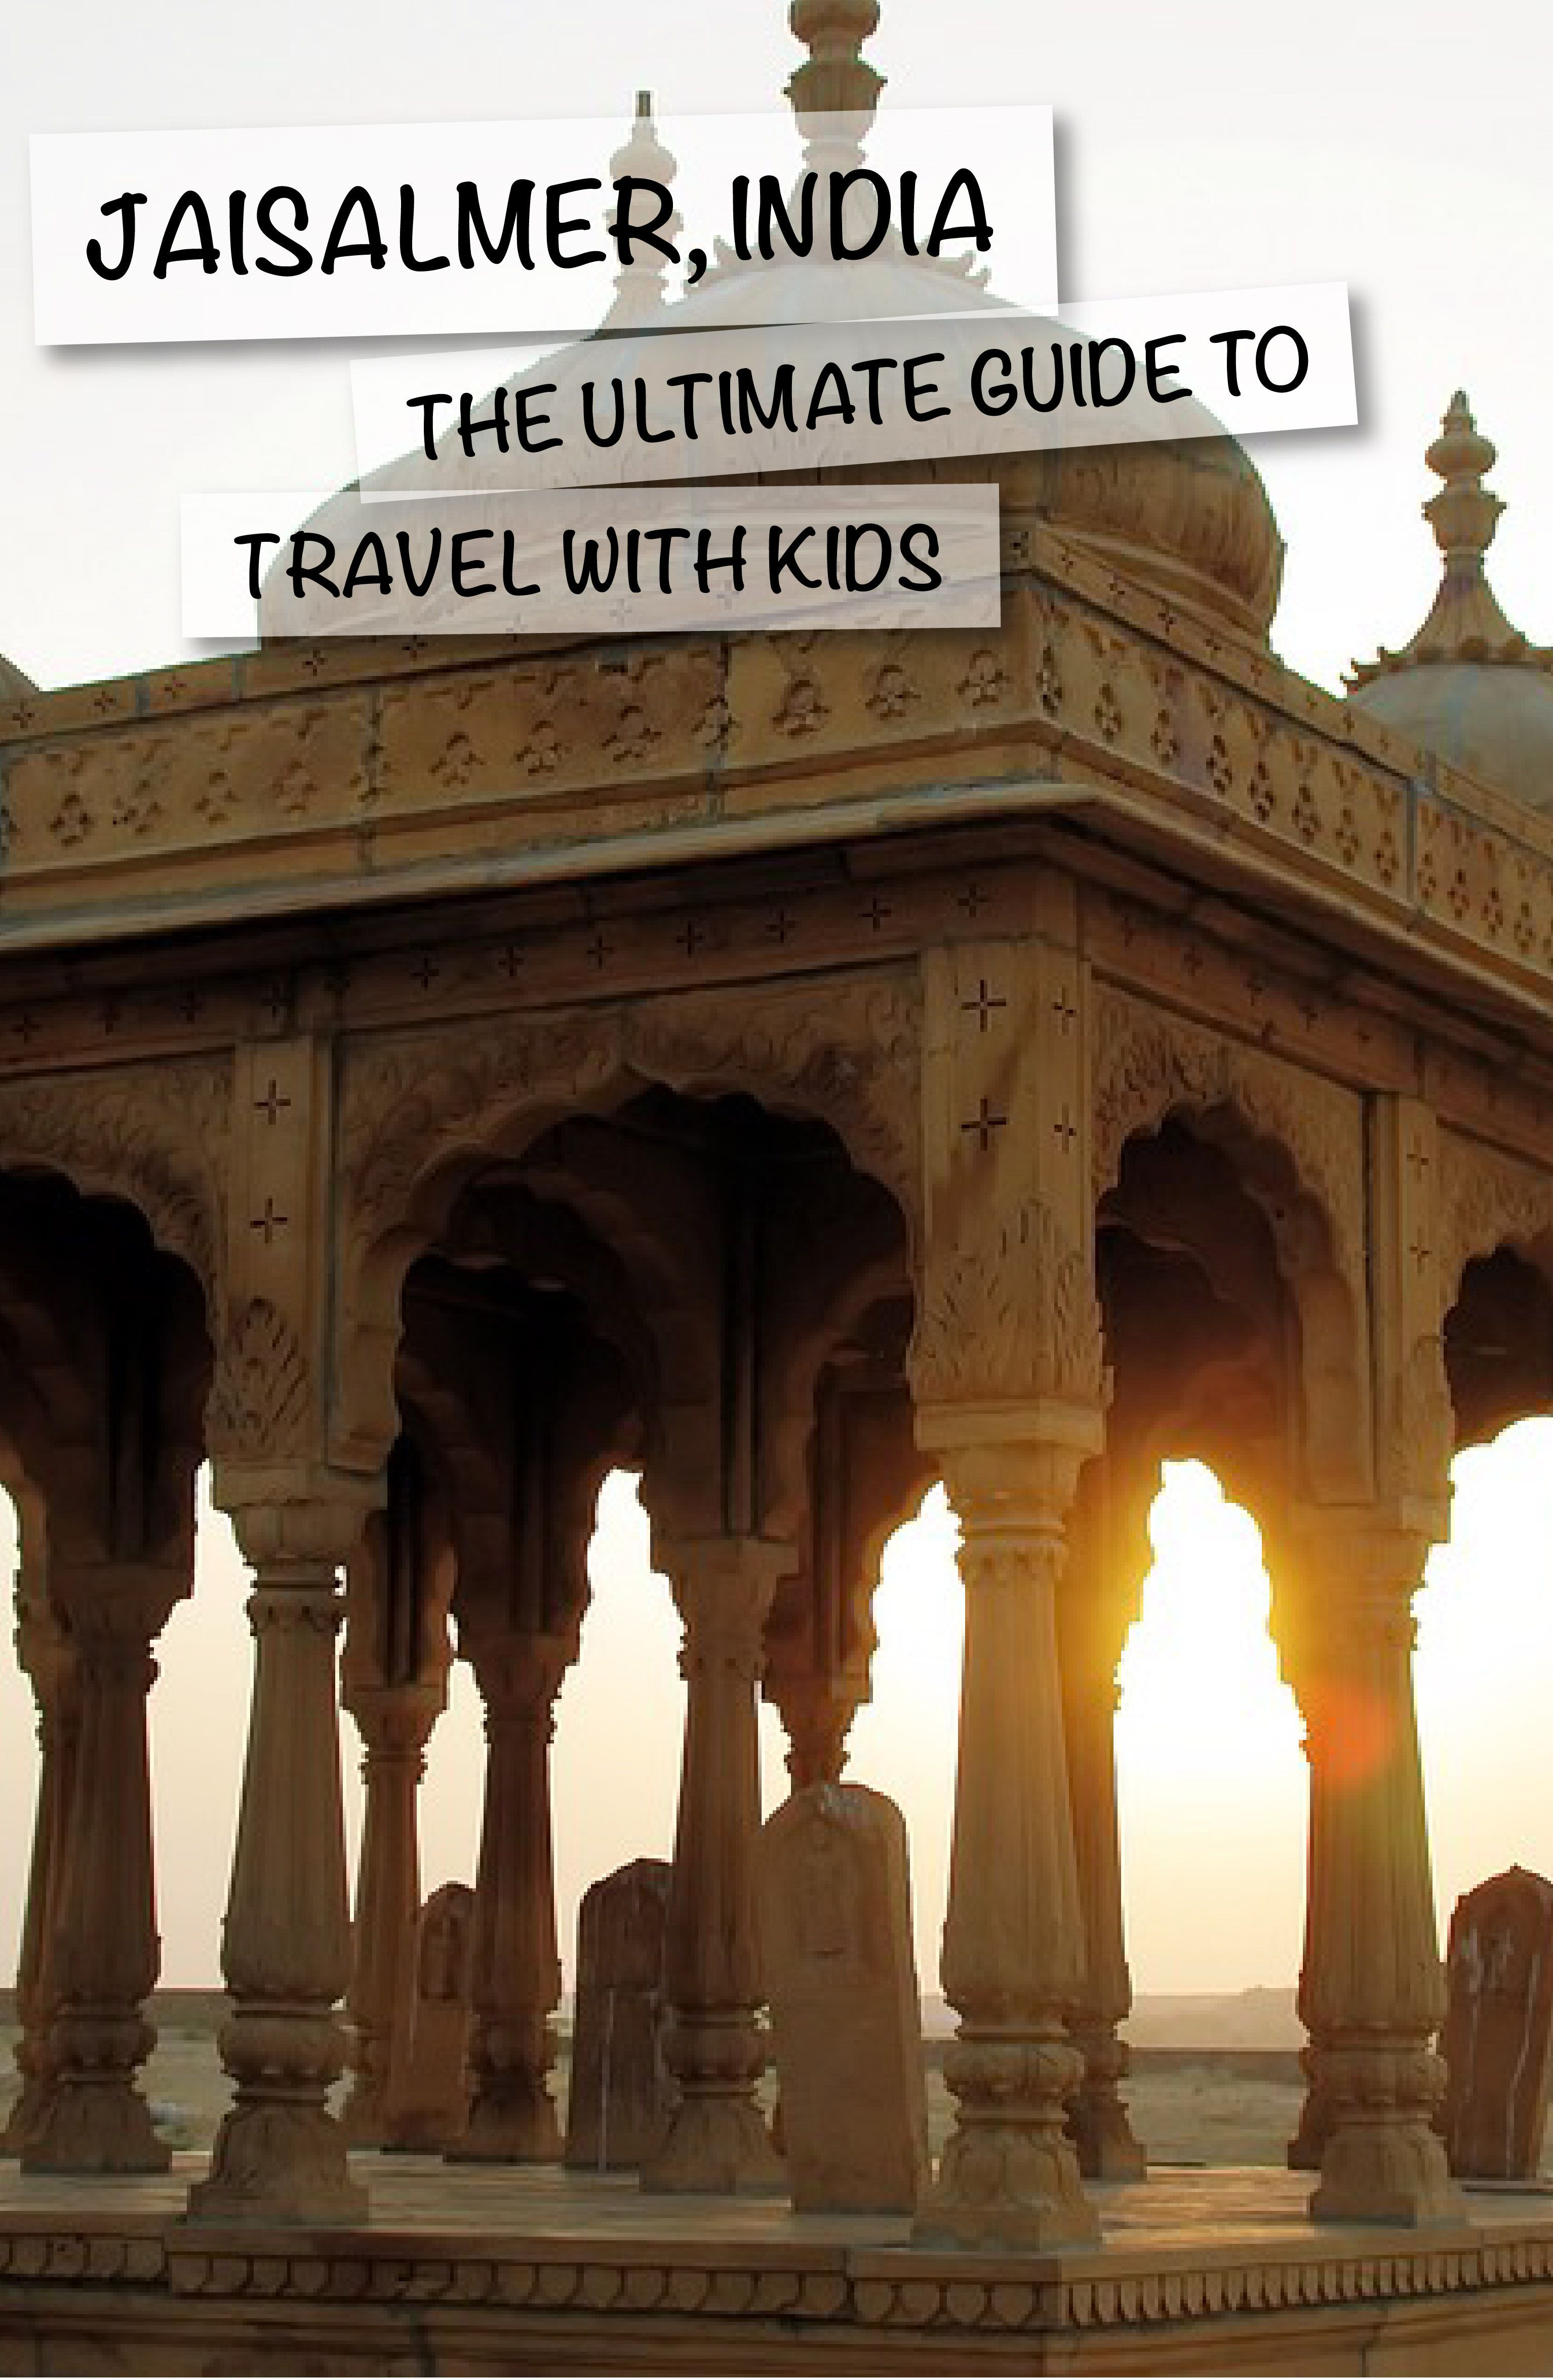 Jaisalmer, India The Ultimate Guide with Kids KidsTravel